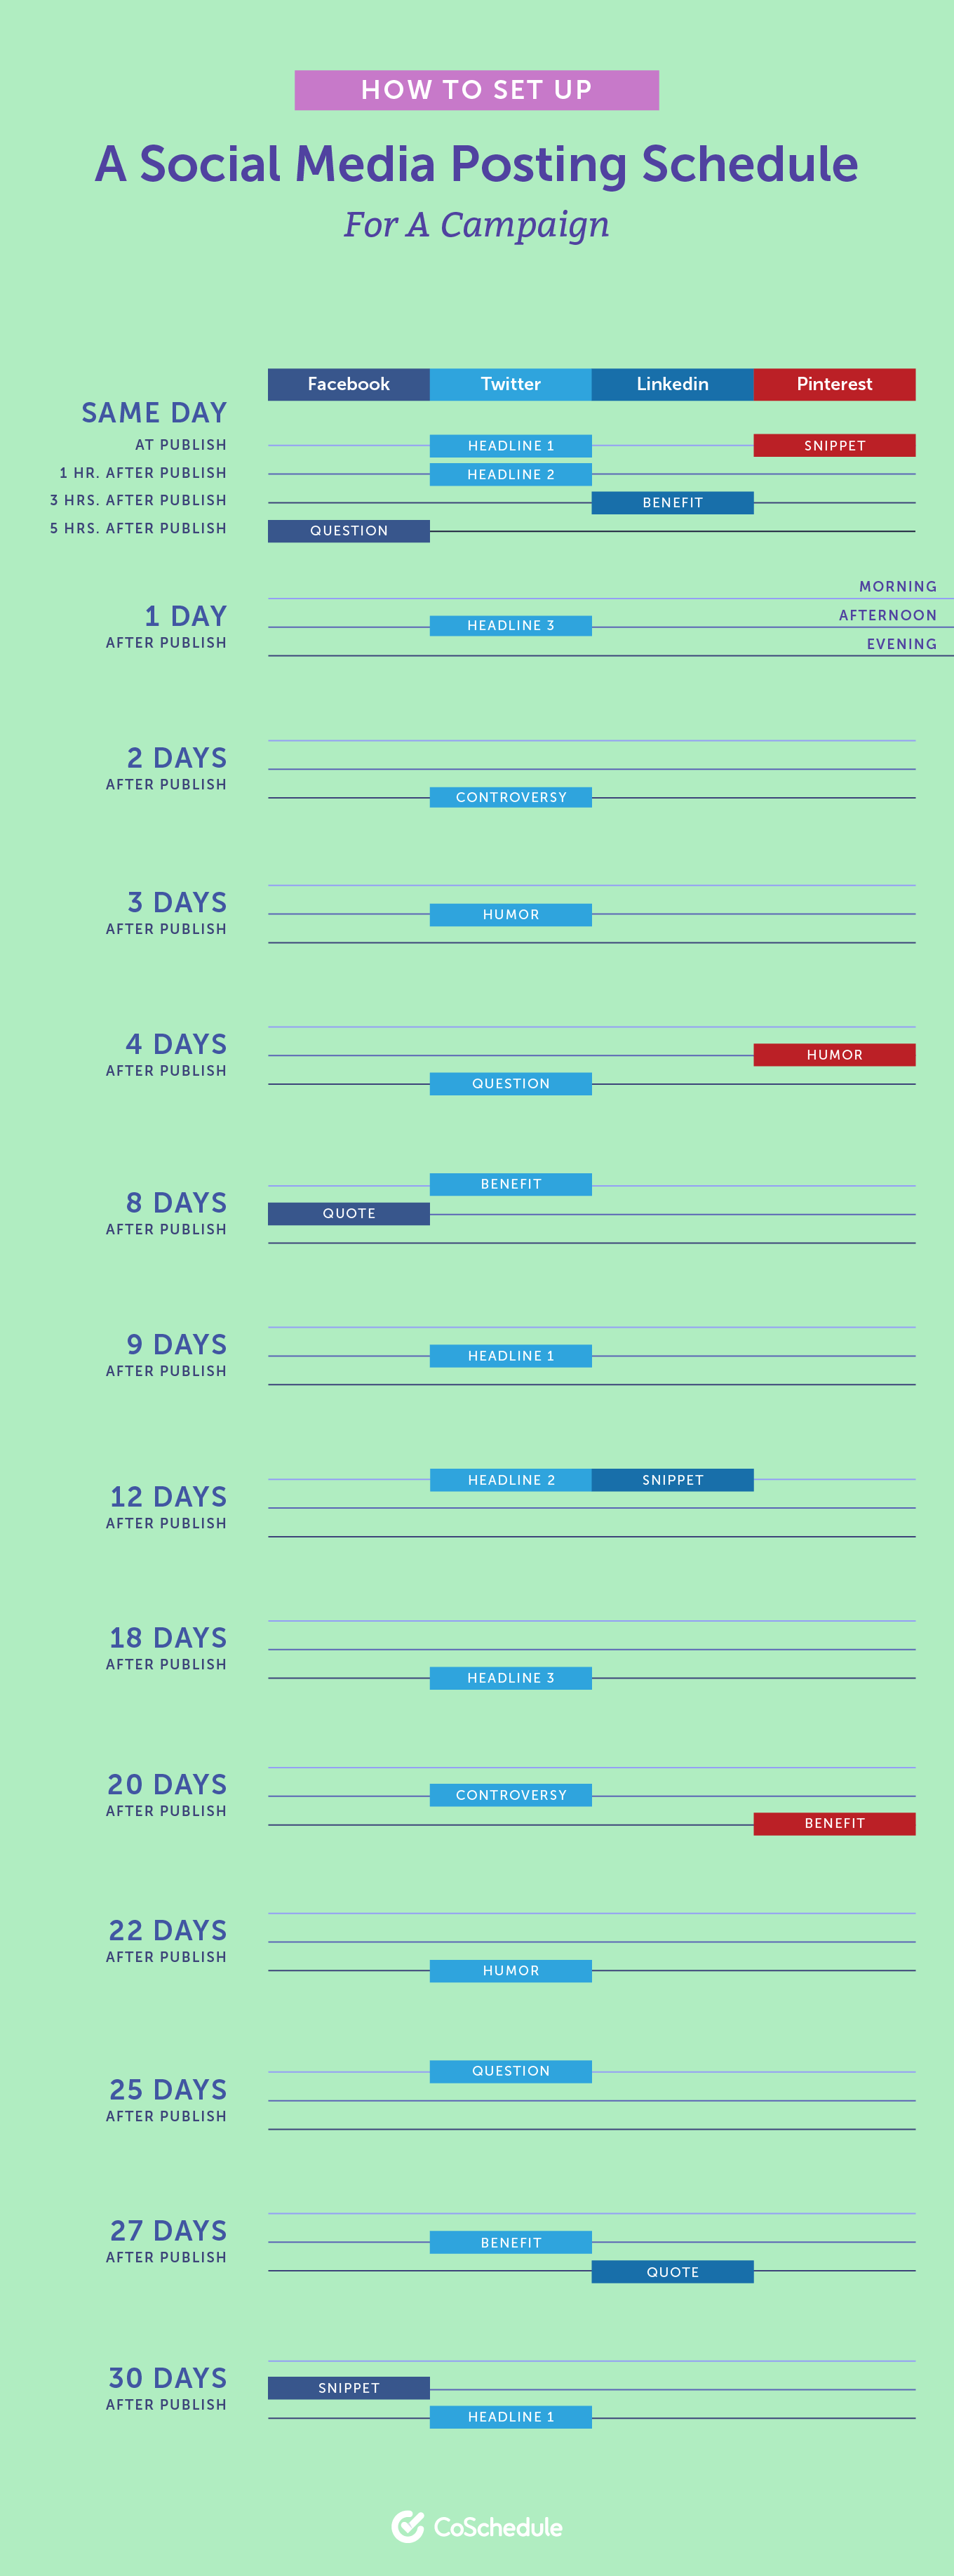 Posting schedule example for social media